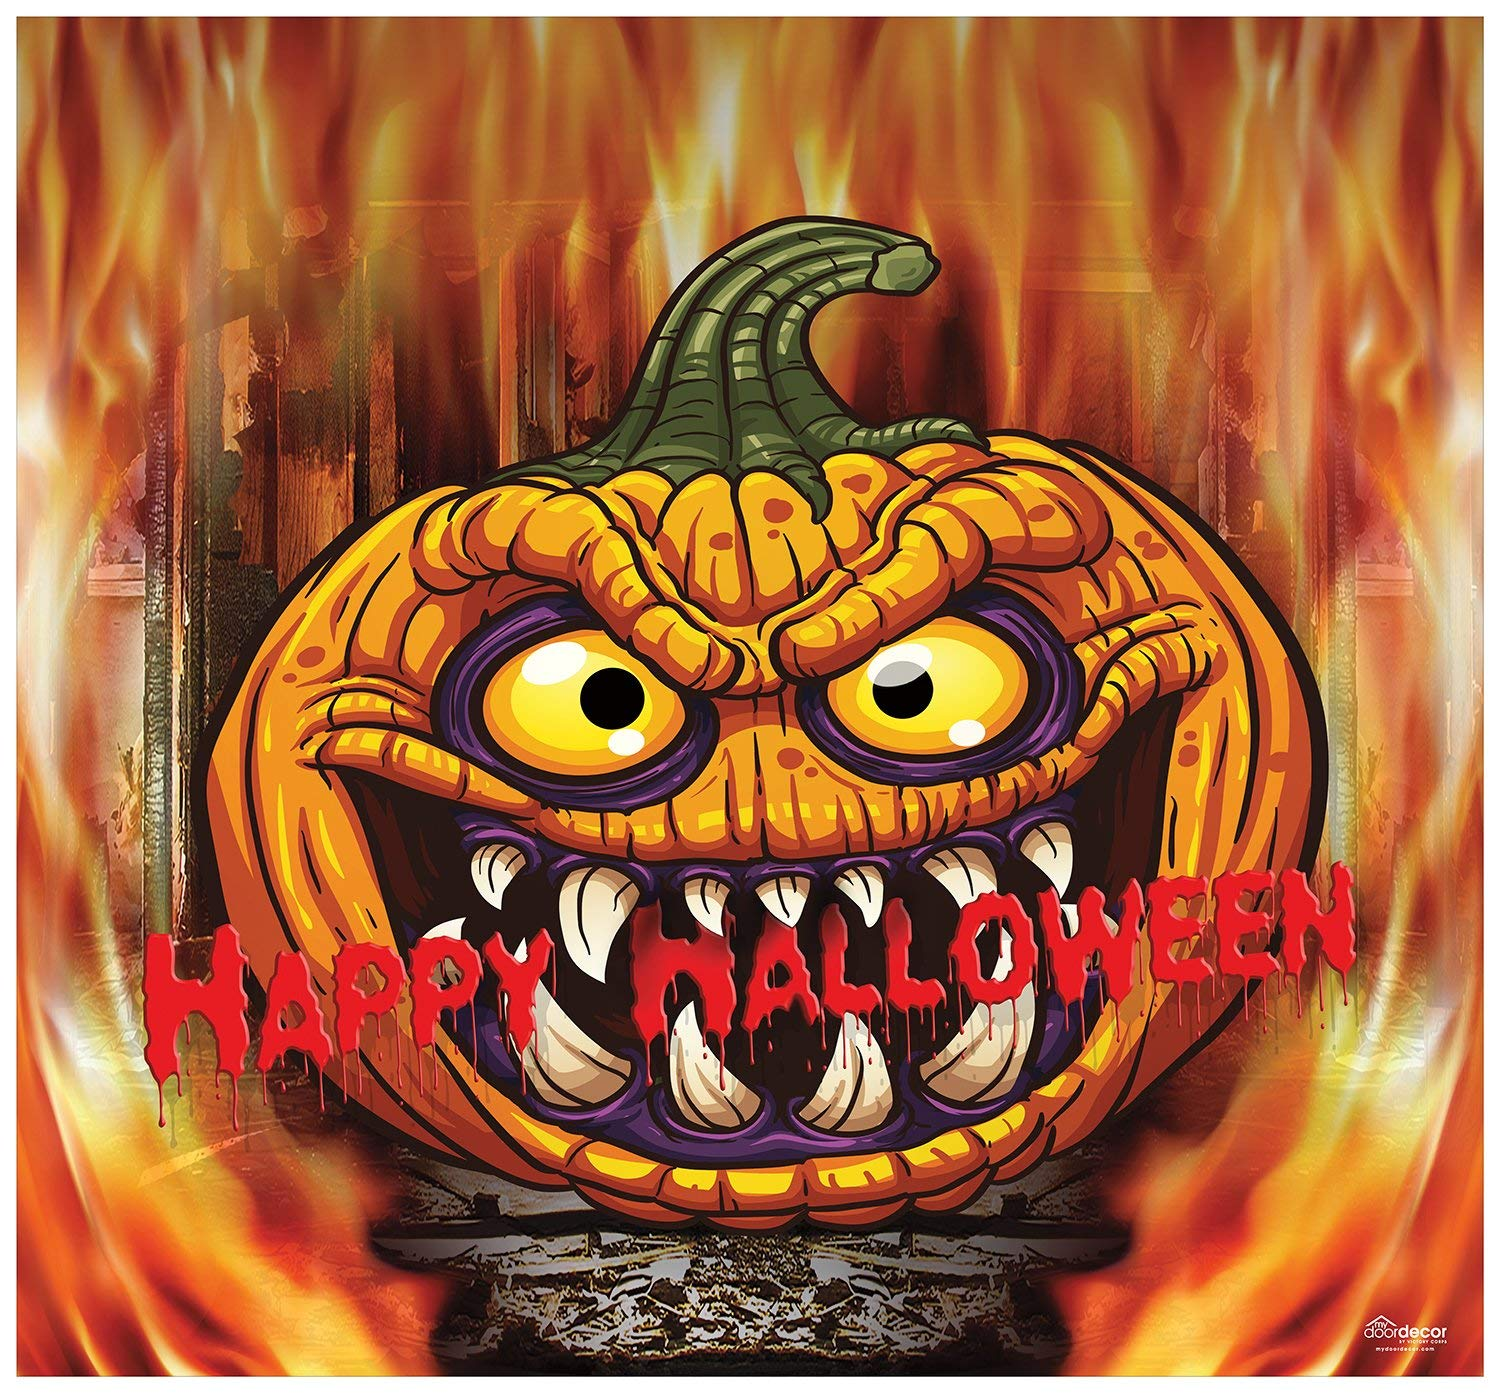 Victory Corps Outdoor Halloween Holiday Garage Door Banner Cover Mural Décoration - Scary Pumpkin in Flame Halloween Garage Door Banner Décor Sign 7'x8'